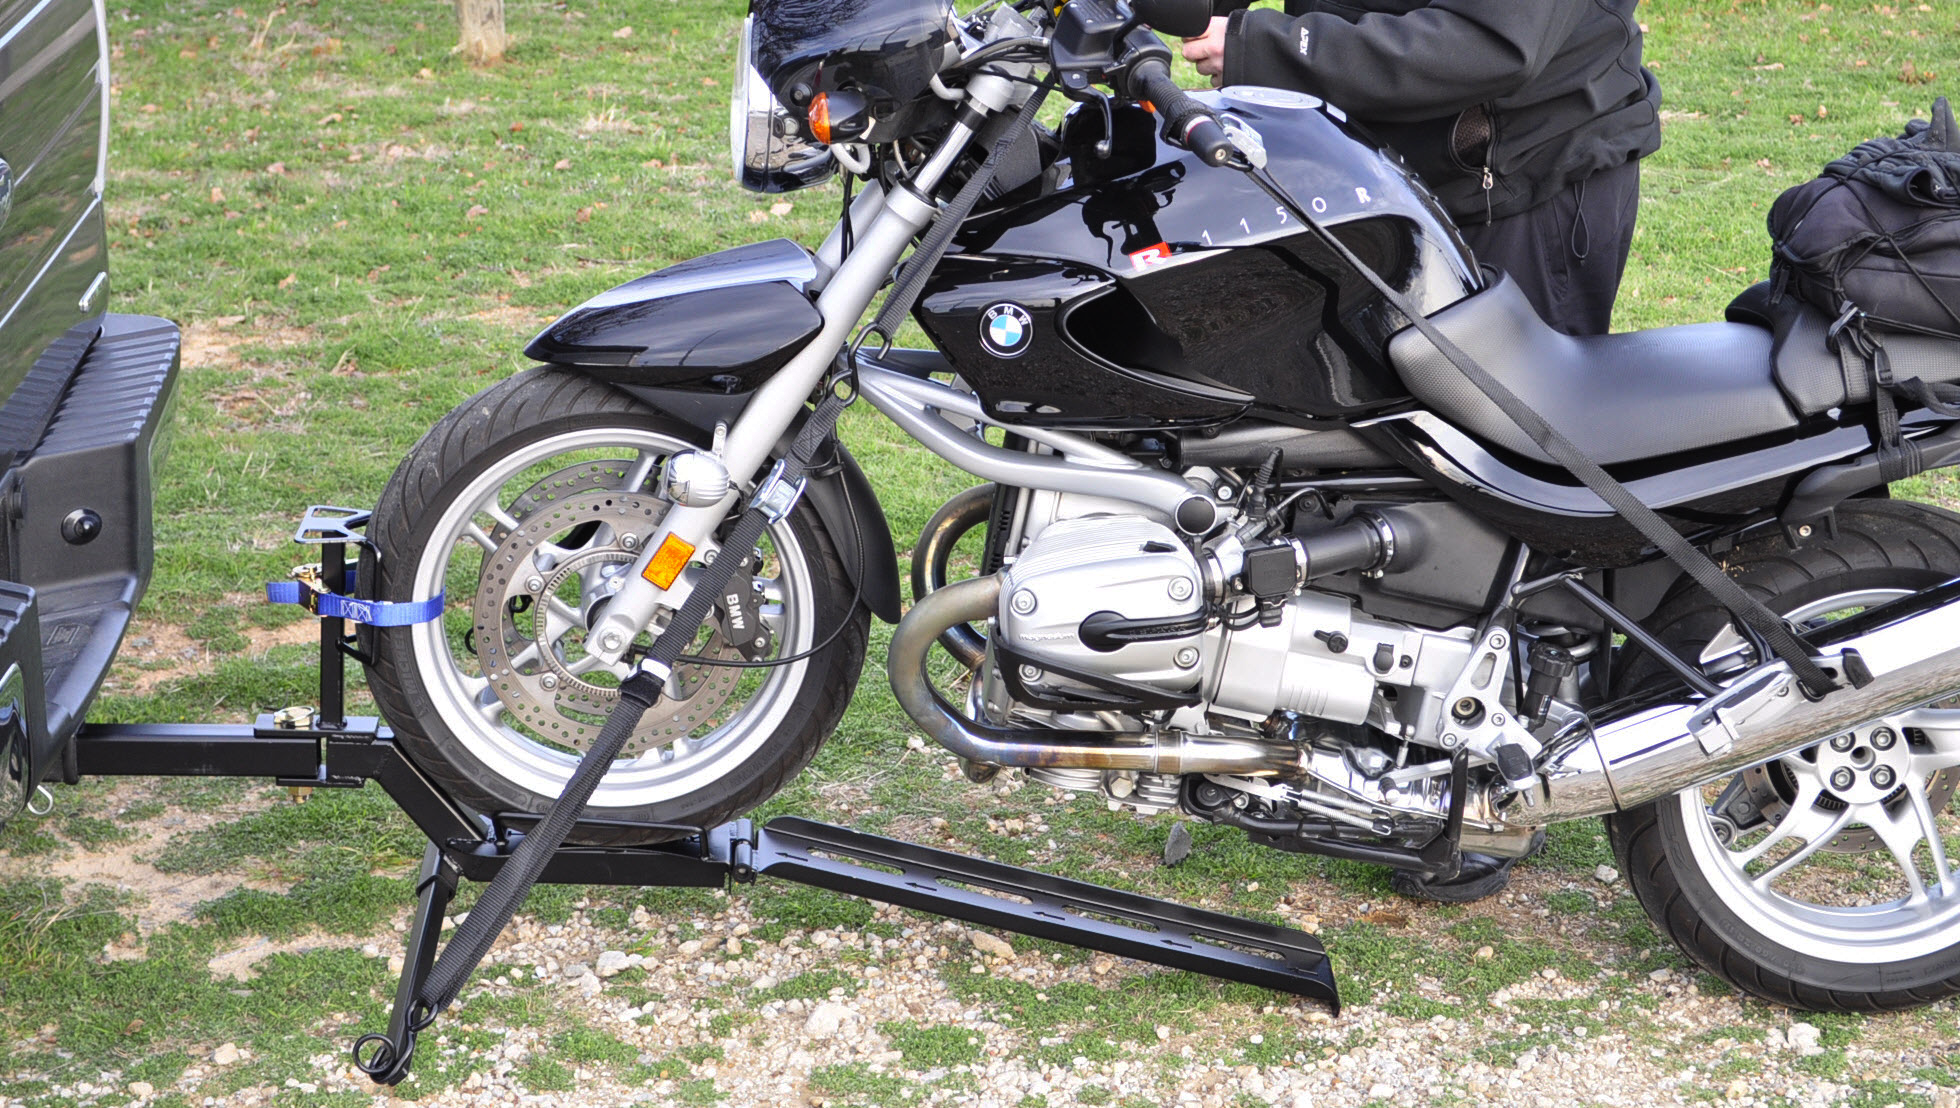 Motorcycle Safety Gear >> Simple, Easy-Stow Compact Trailer-Hitch Motorcycle Towing